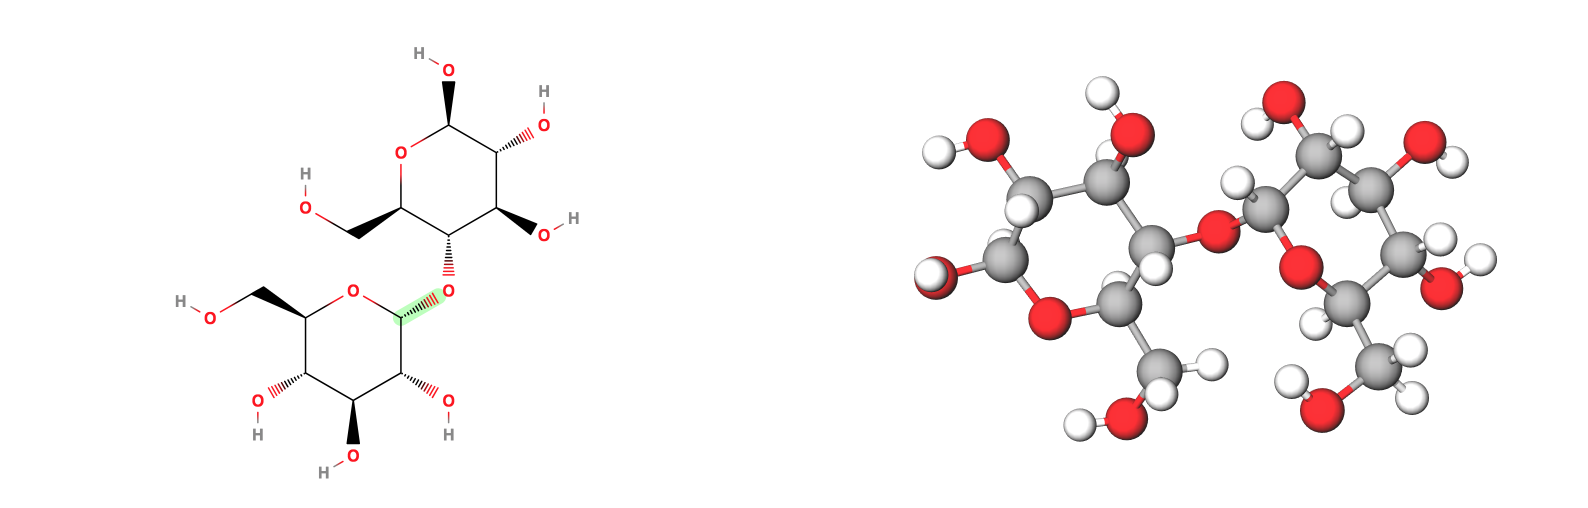 Maltose - a typical sugar - chemical structure and 3D Model